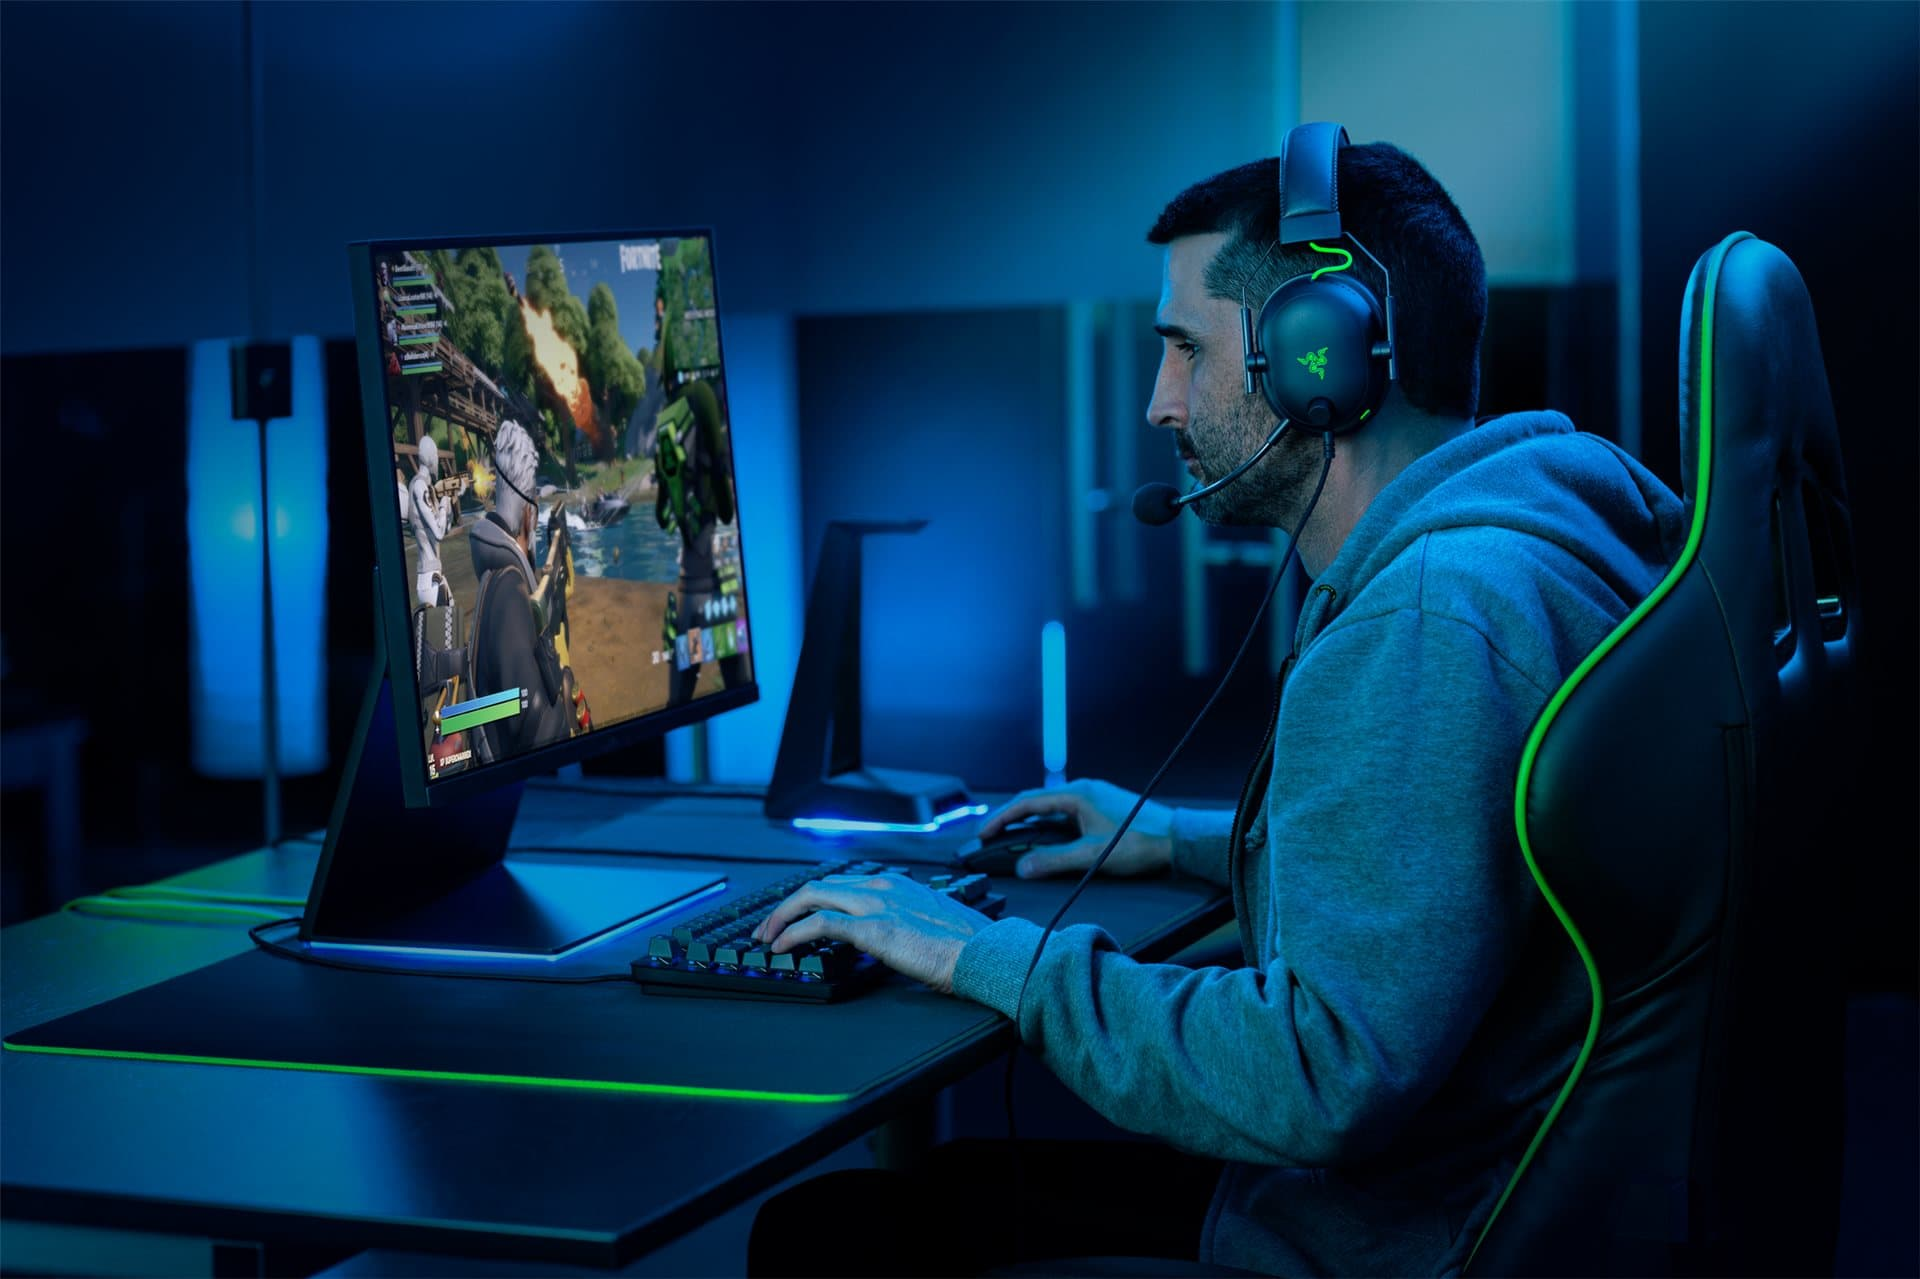 Razer releases a new esports headset, the BlackShark V2